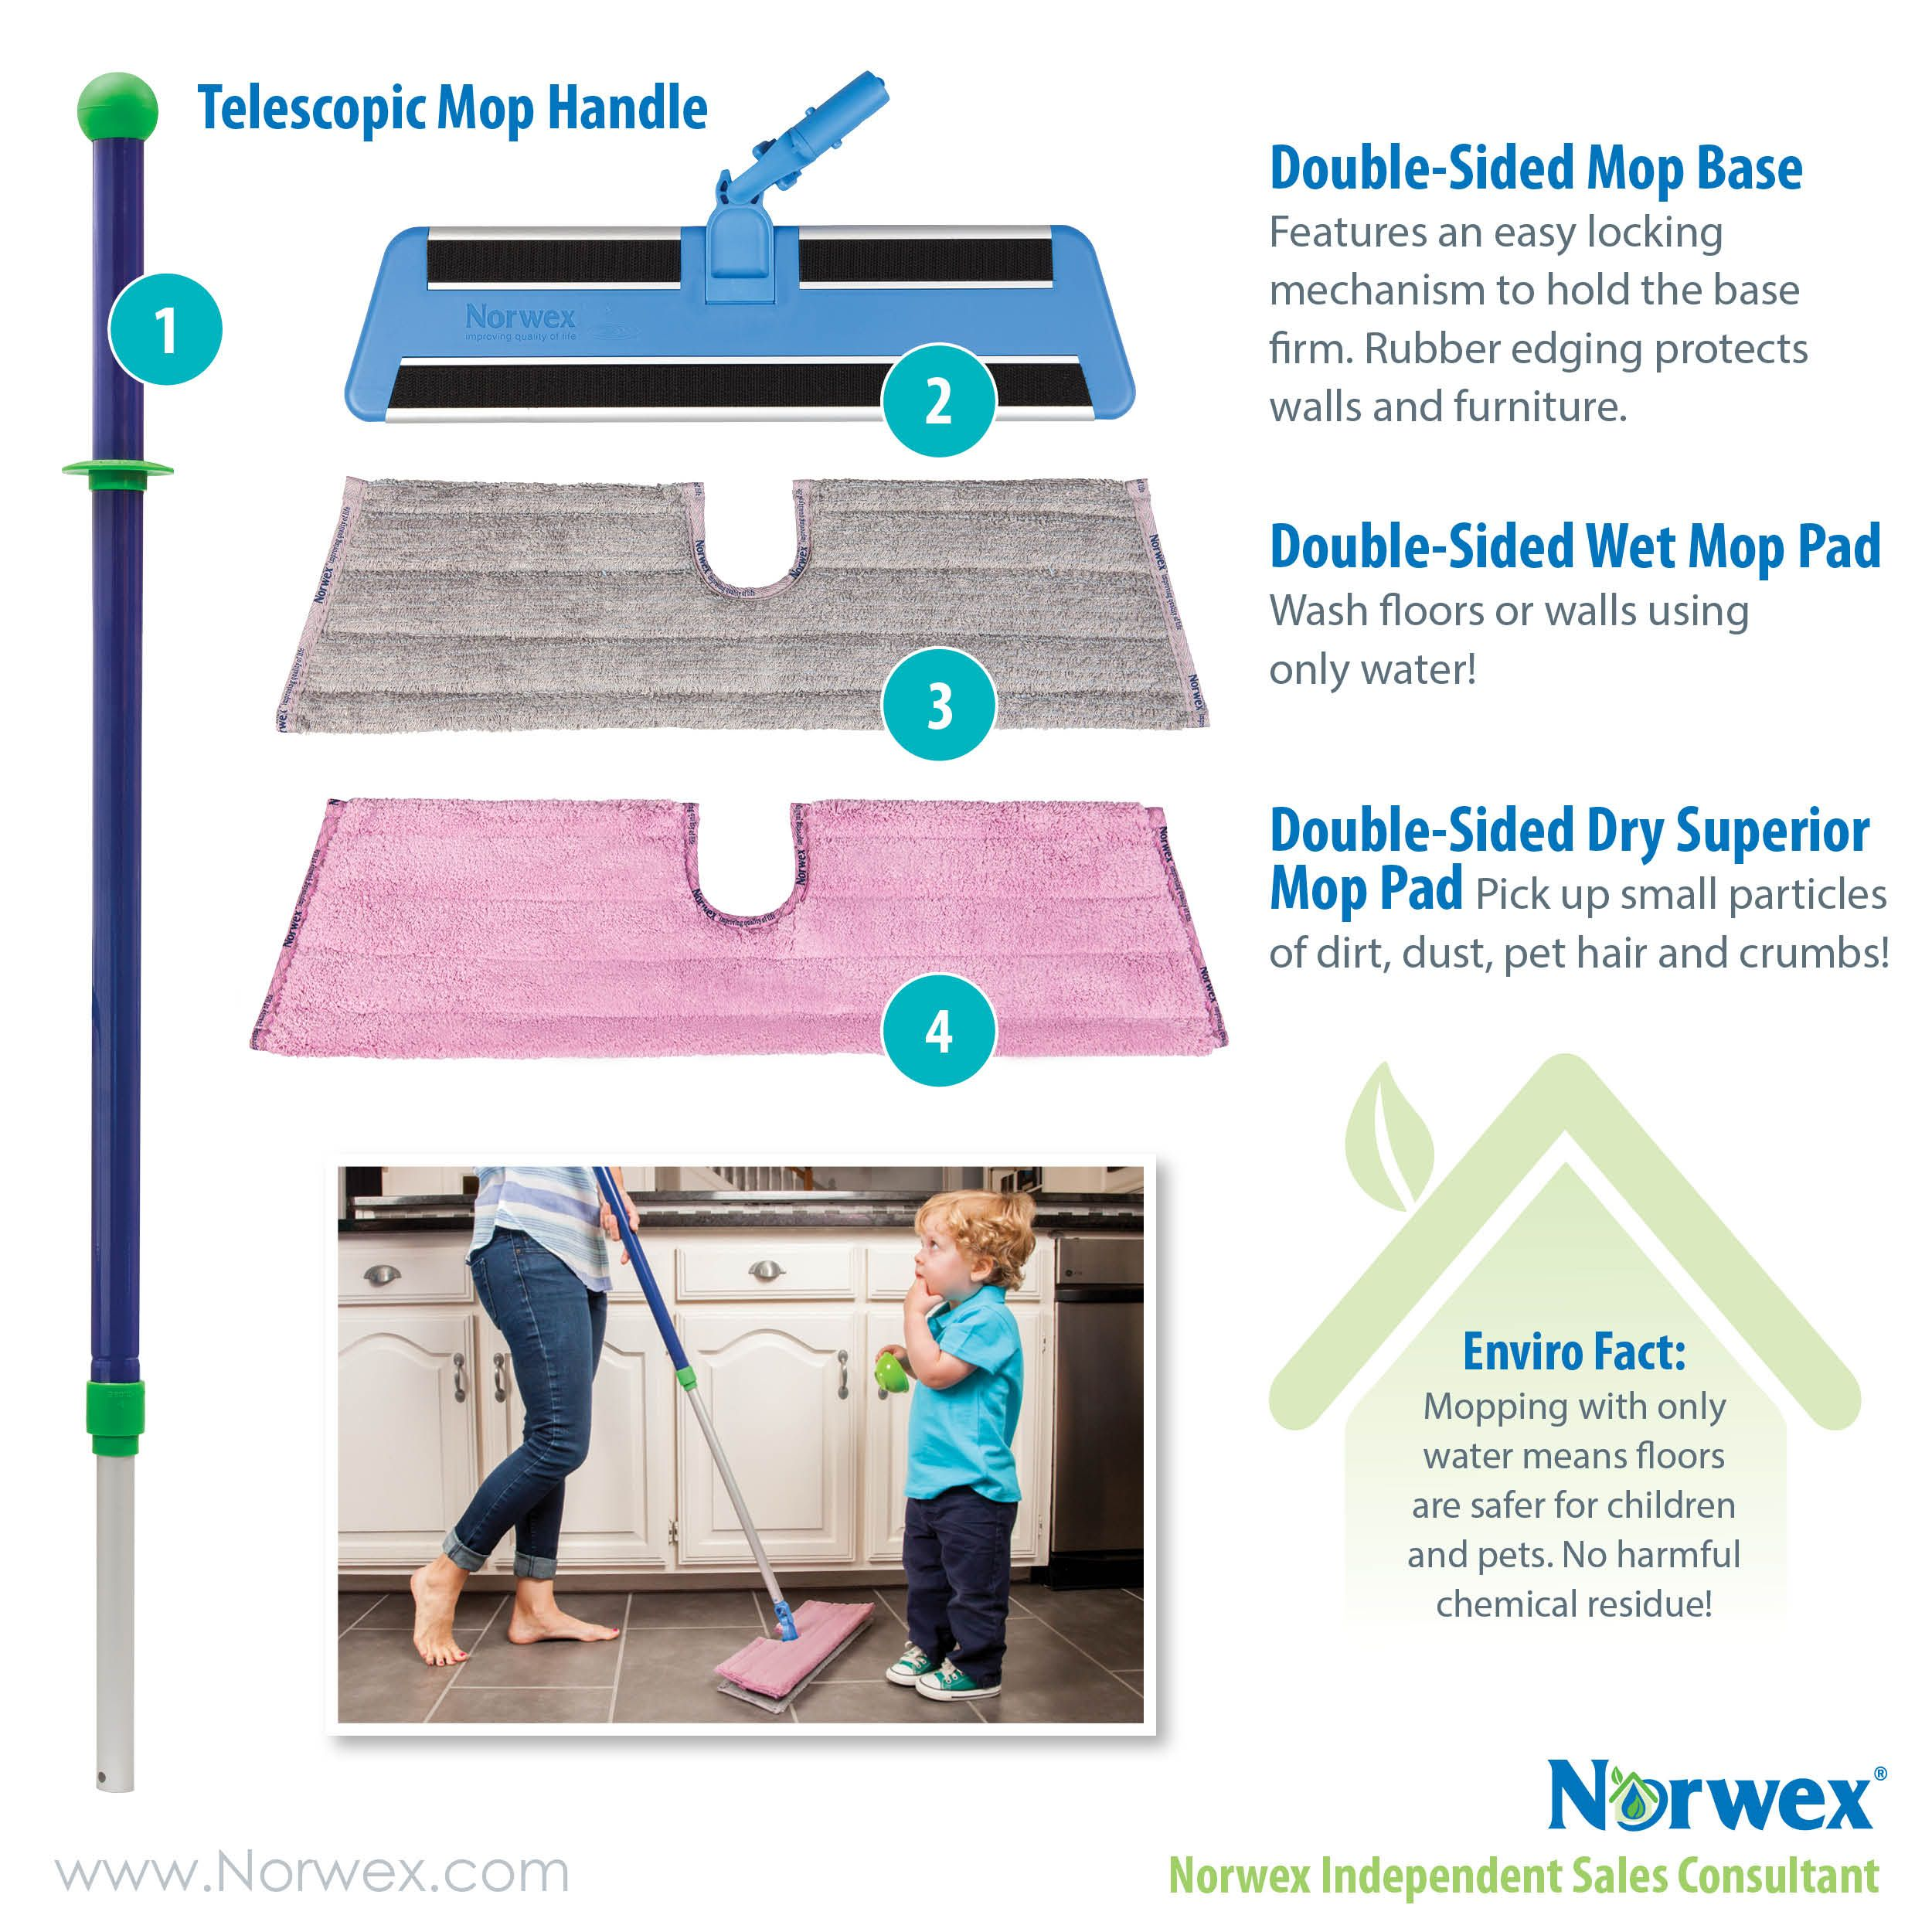 Norwex Catalog: More About The Mop